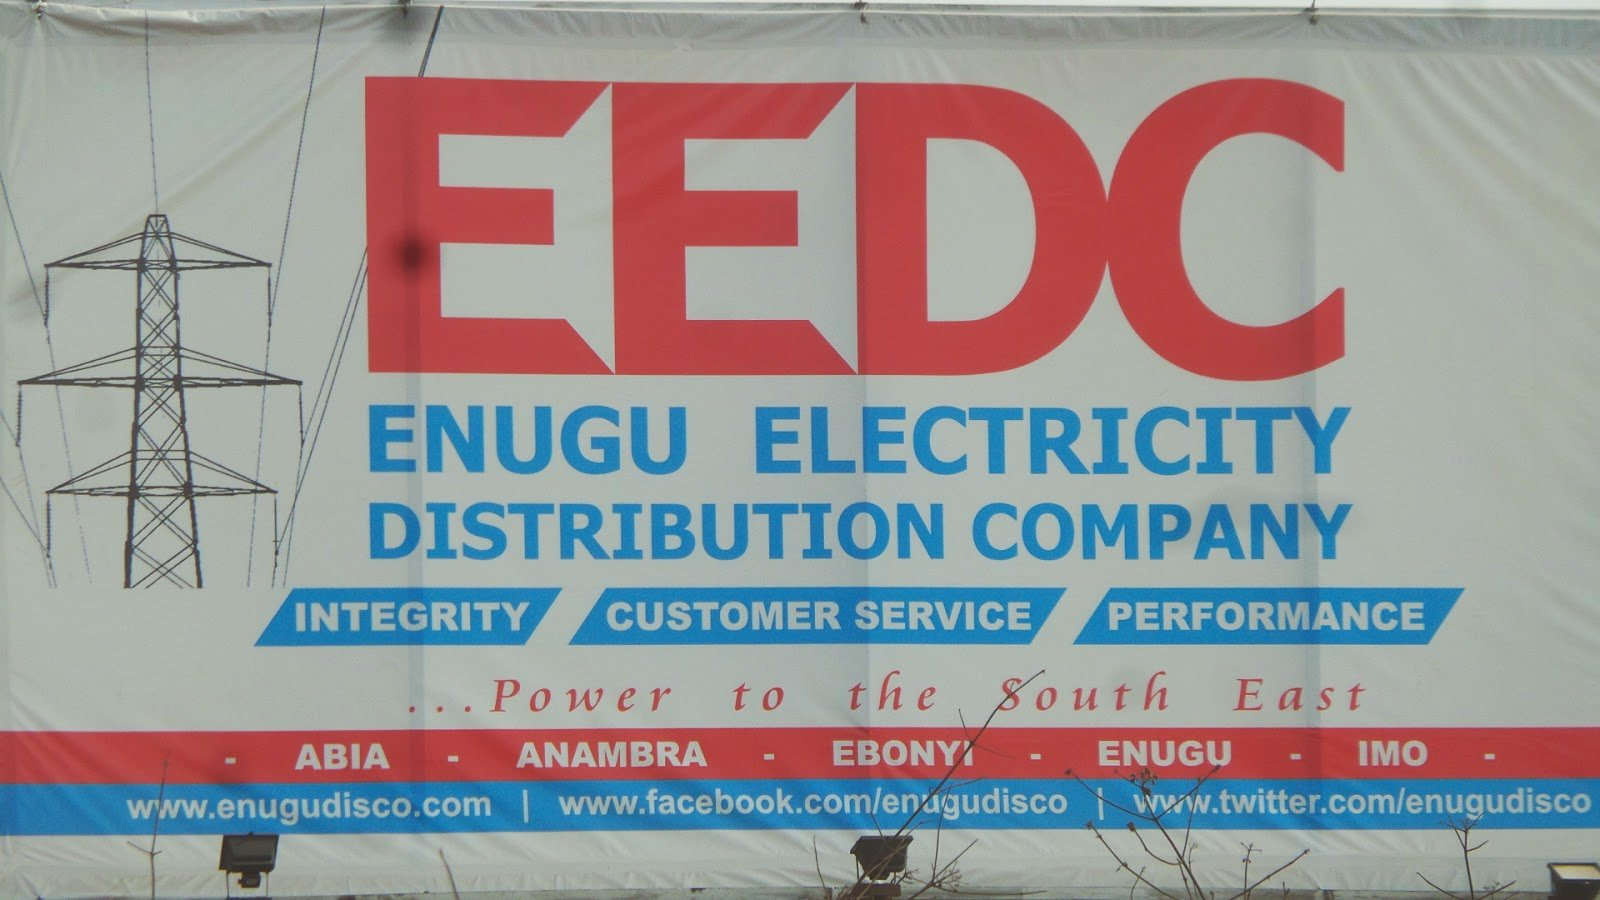 Eedc Commences Repairs Of Vandalised Equipment At Enugu Gra